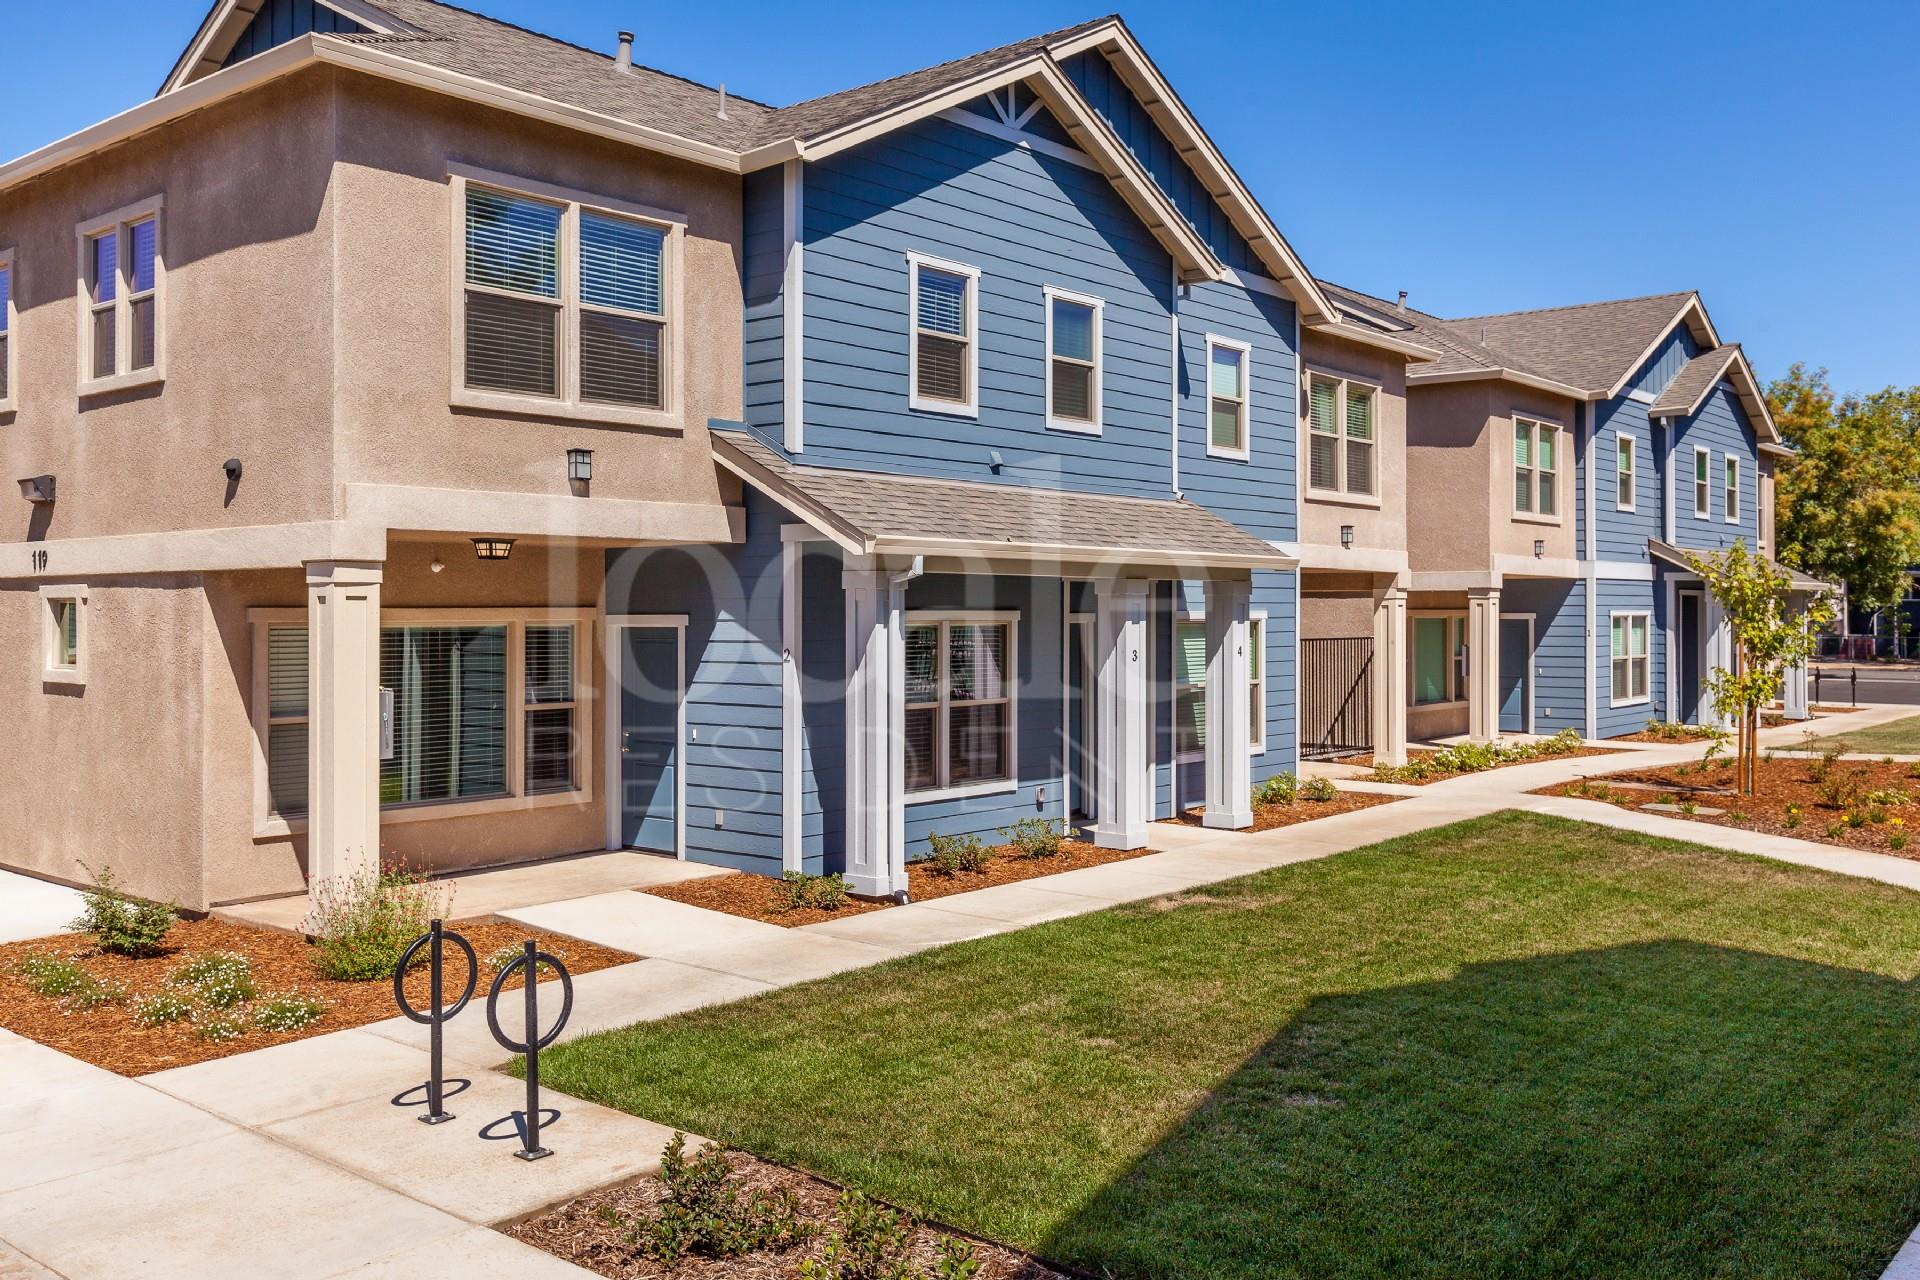 uptown place apartments - chico, ca - ipm | chico property